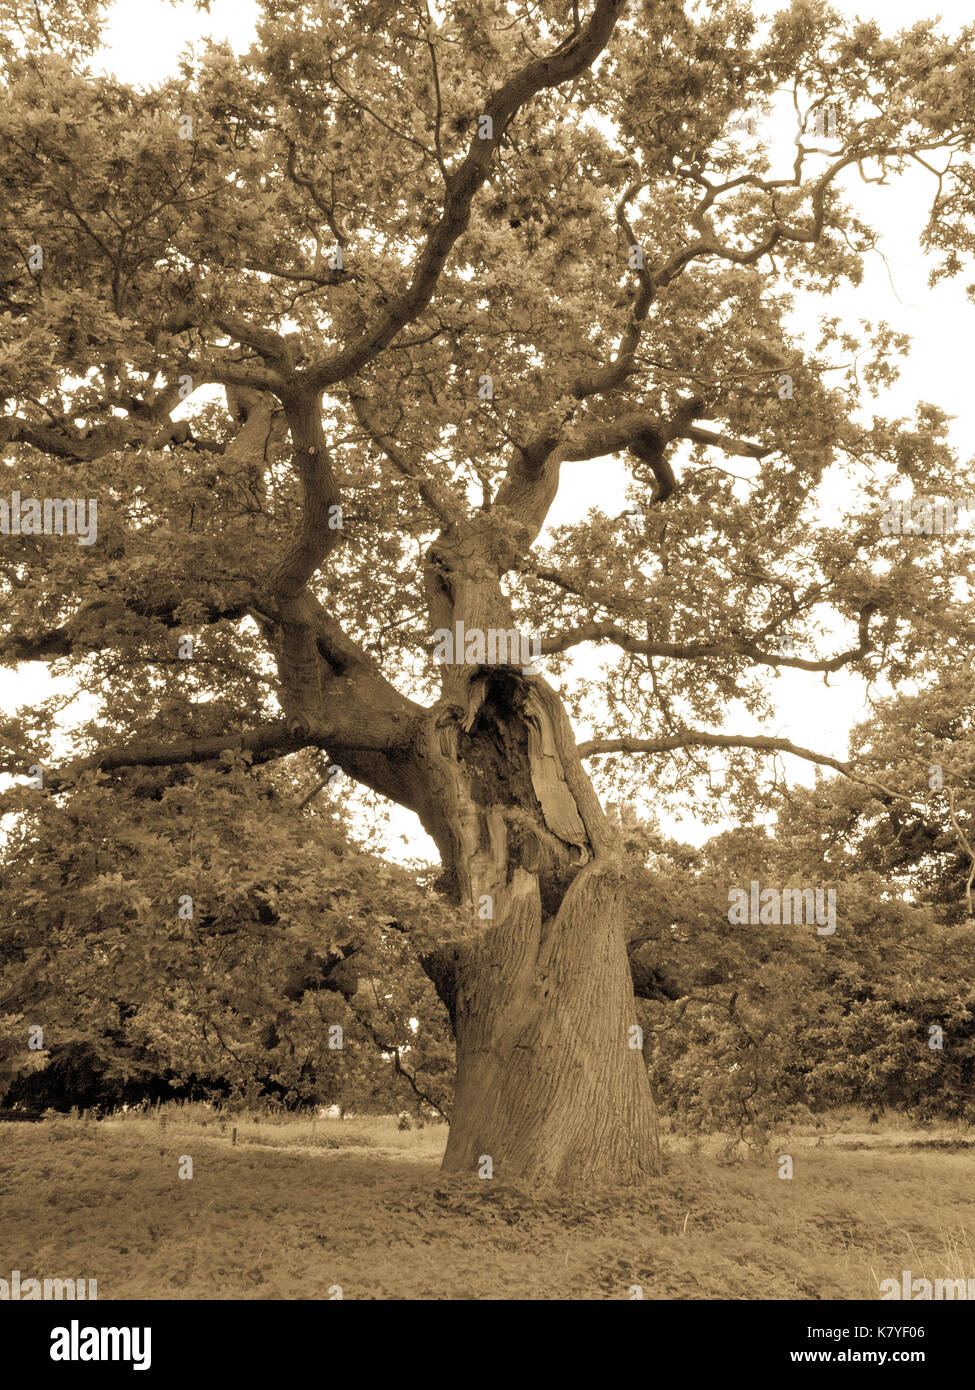 Perseverance: Ancient Oak Tree with Massive Gash in Trunk (Antique Monotone image) - Stock Image